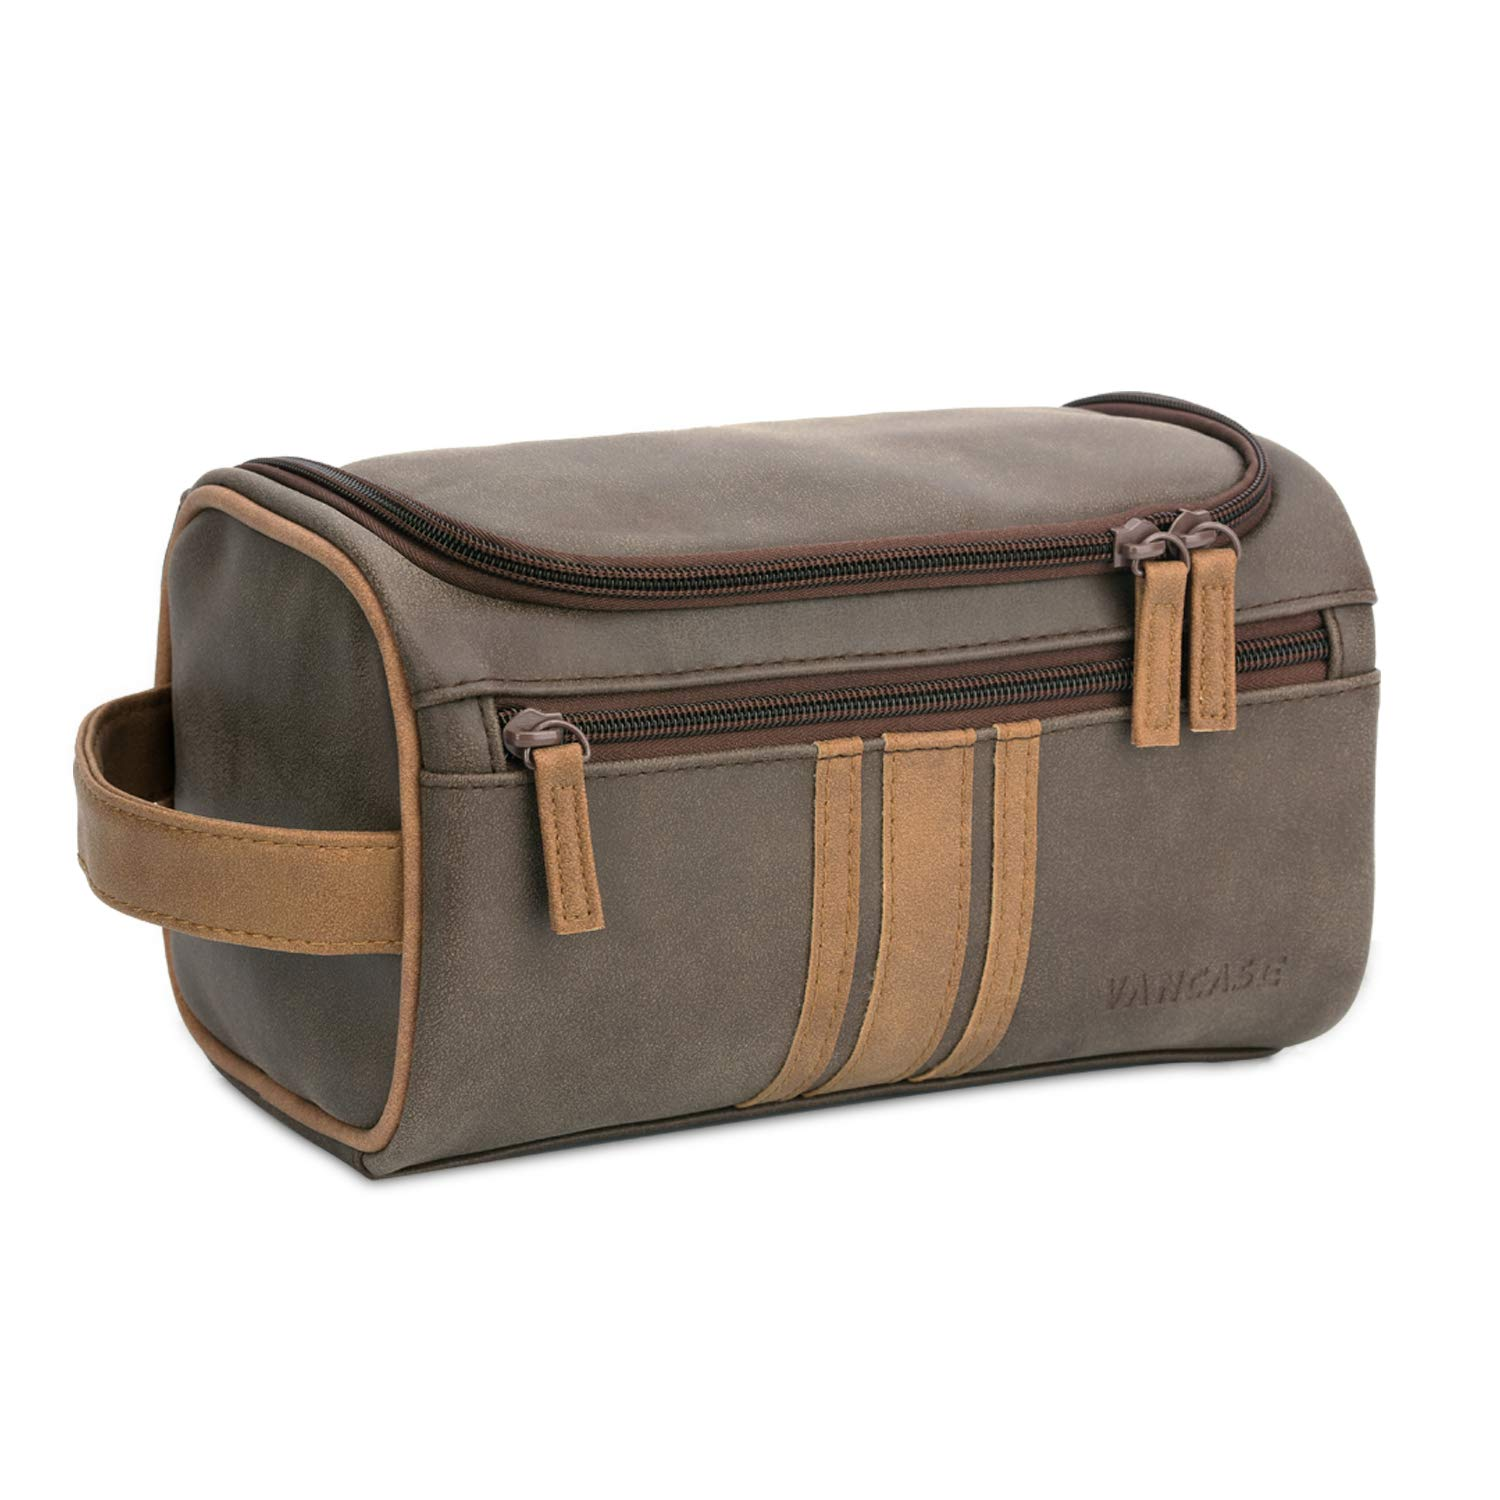 Vancase Toiletry Bag for Men Vintage Leather Dopp Kit Hanging Shaving Bag Portable Bathroom Shower Organizer for Travel Accessories Brown